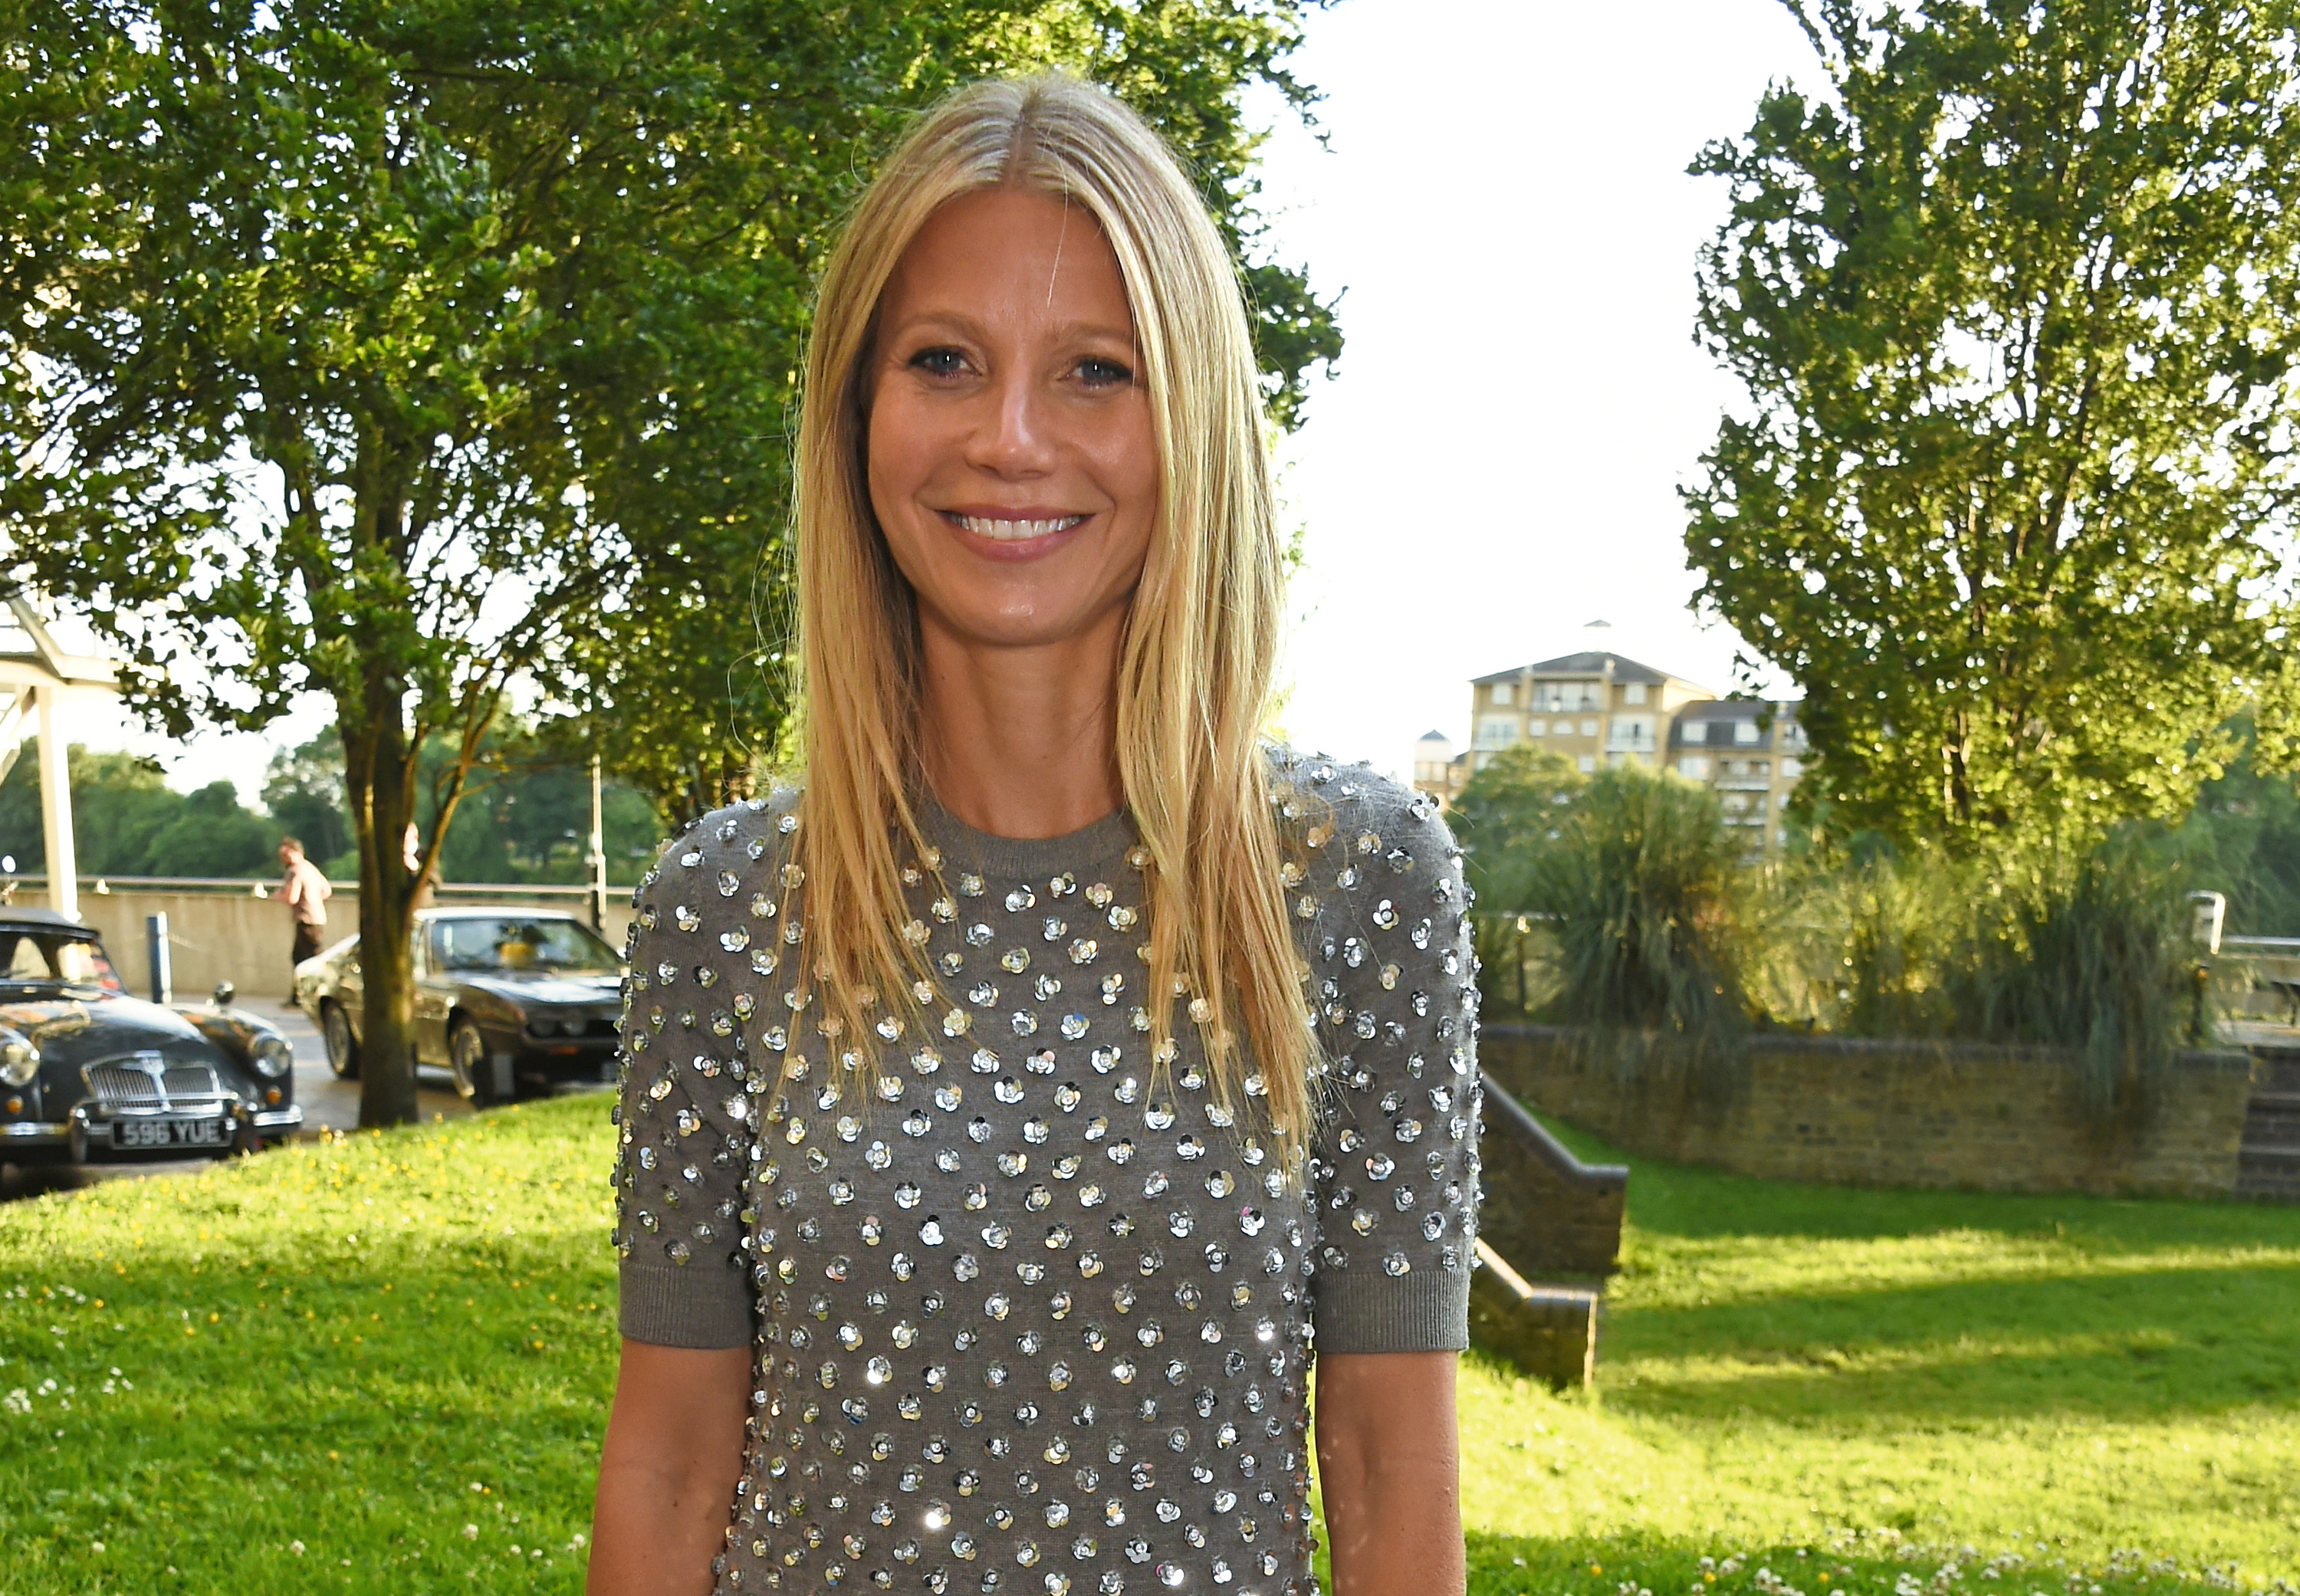 Gwyneth Paltrow attends a private dinner hosted by Michael Kors.